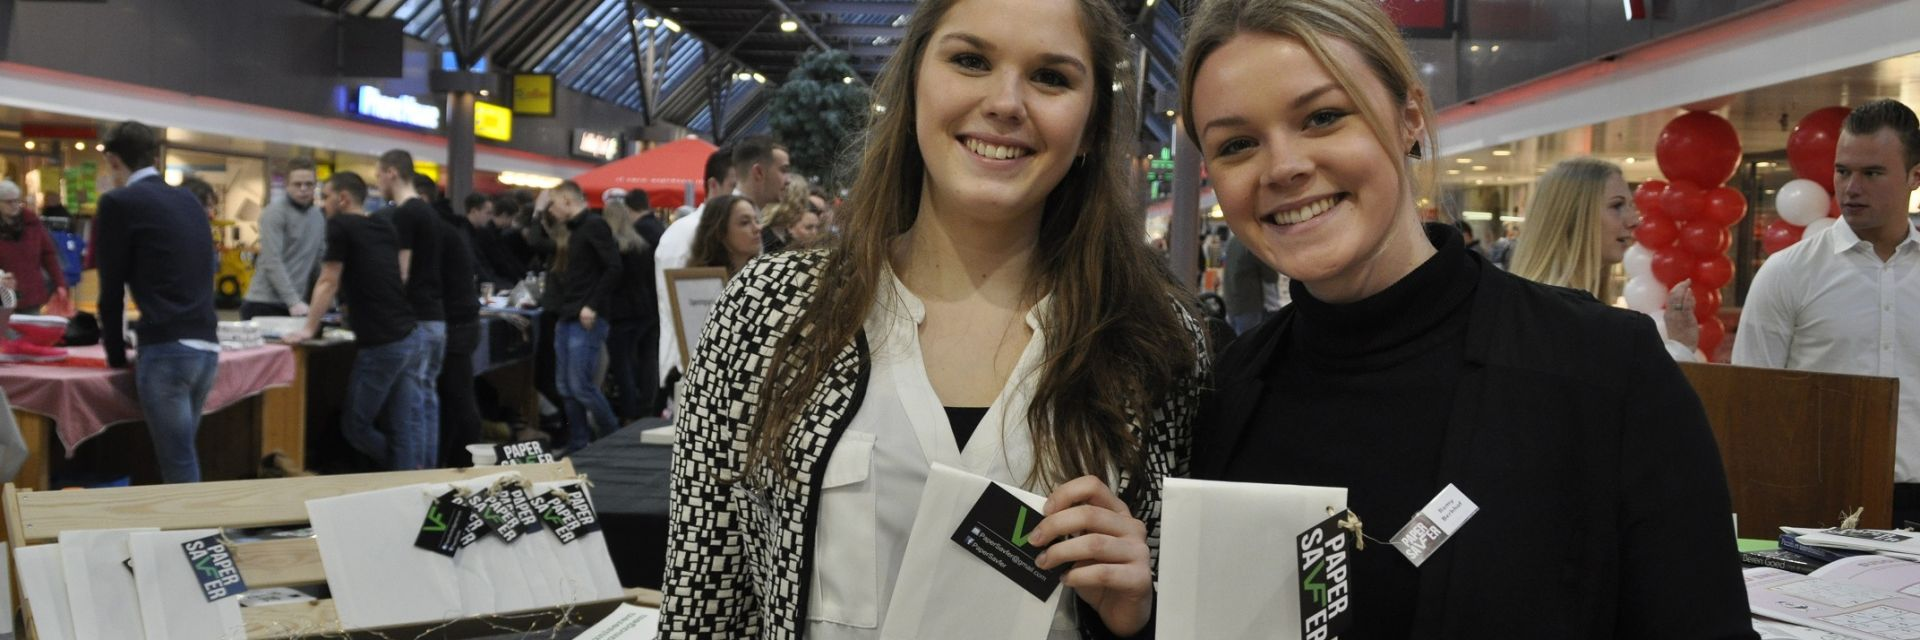 Students Hanze University organise 'Musthave Marketday'